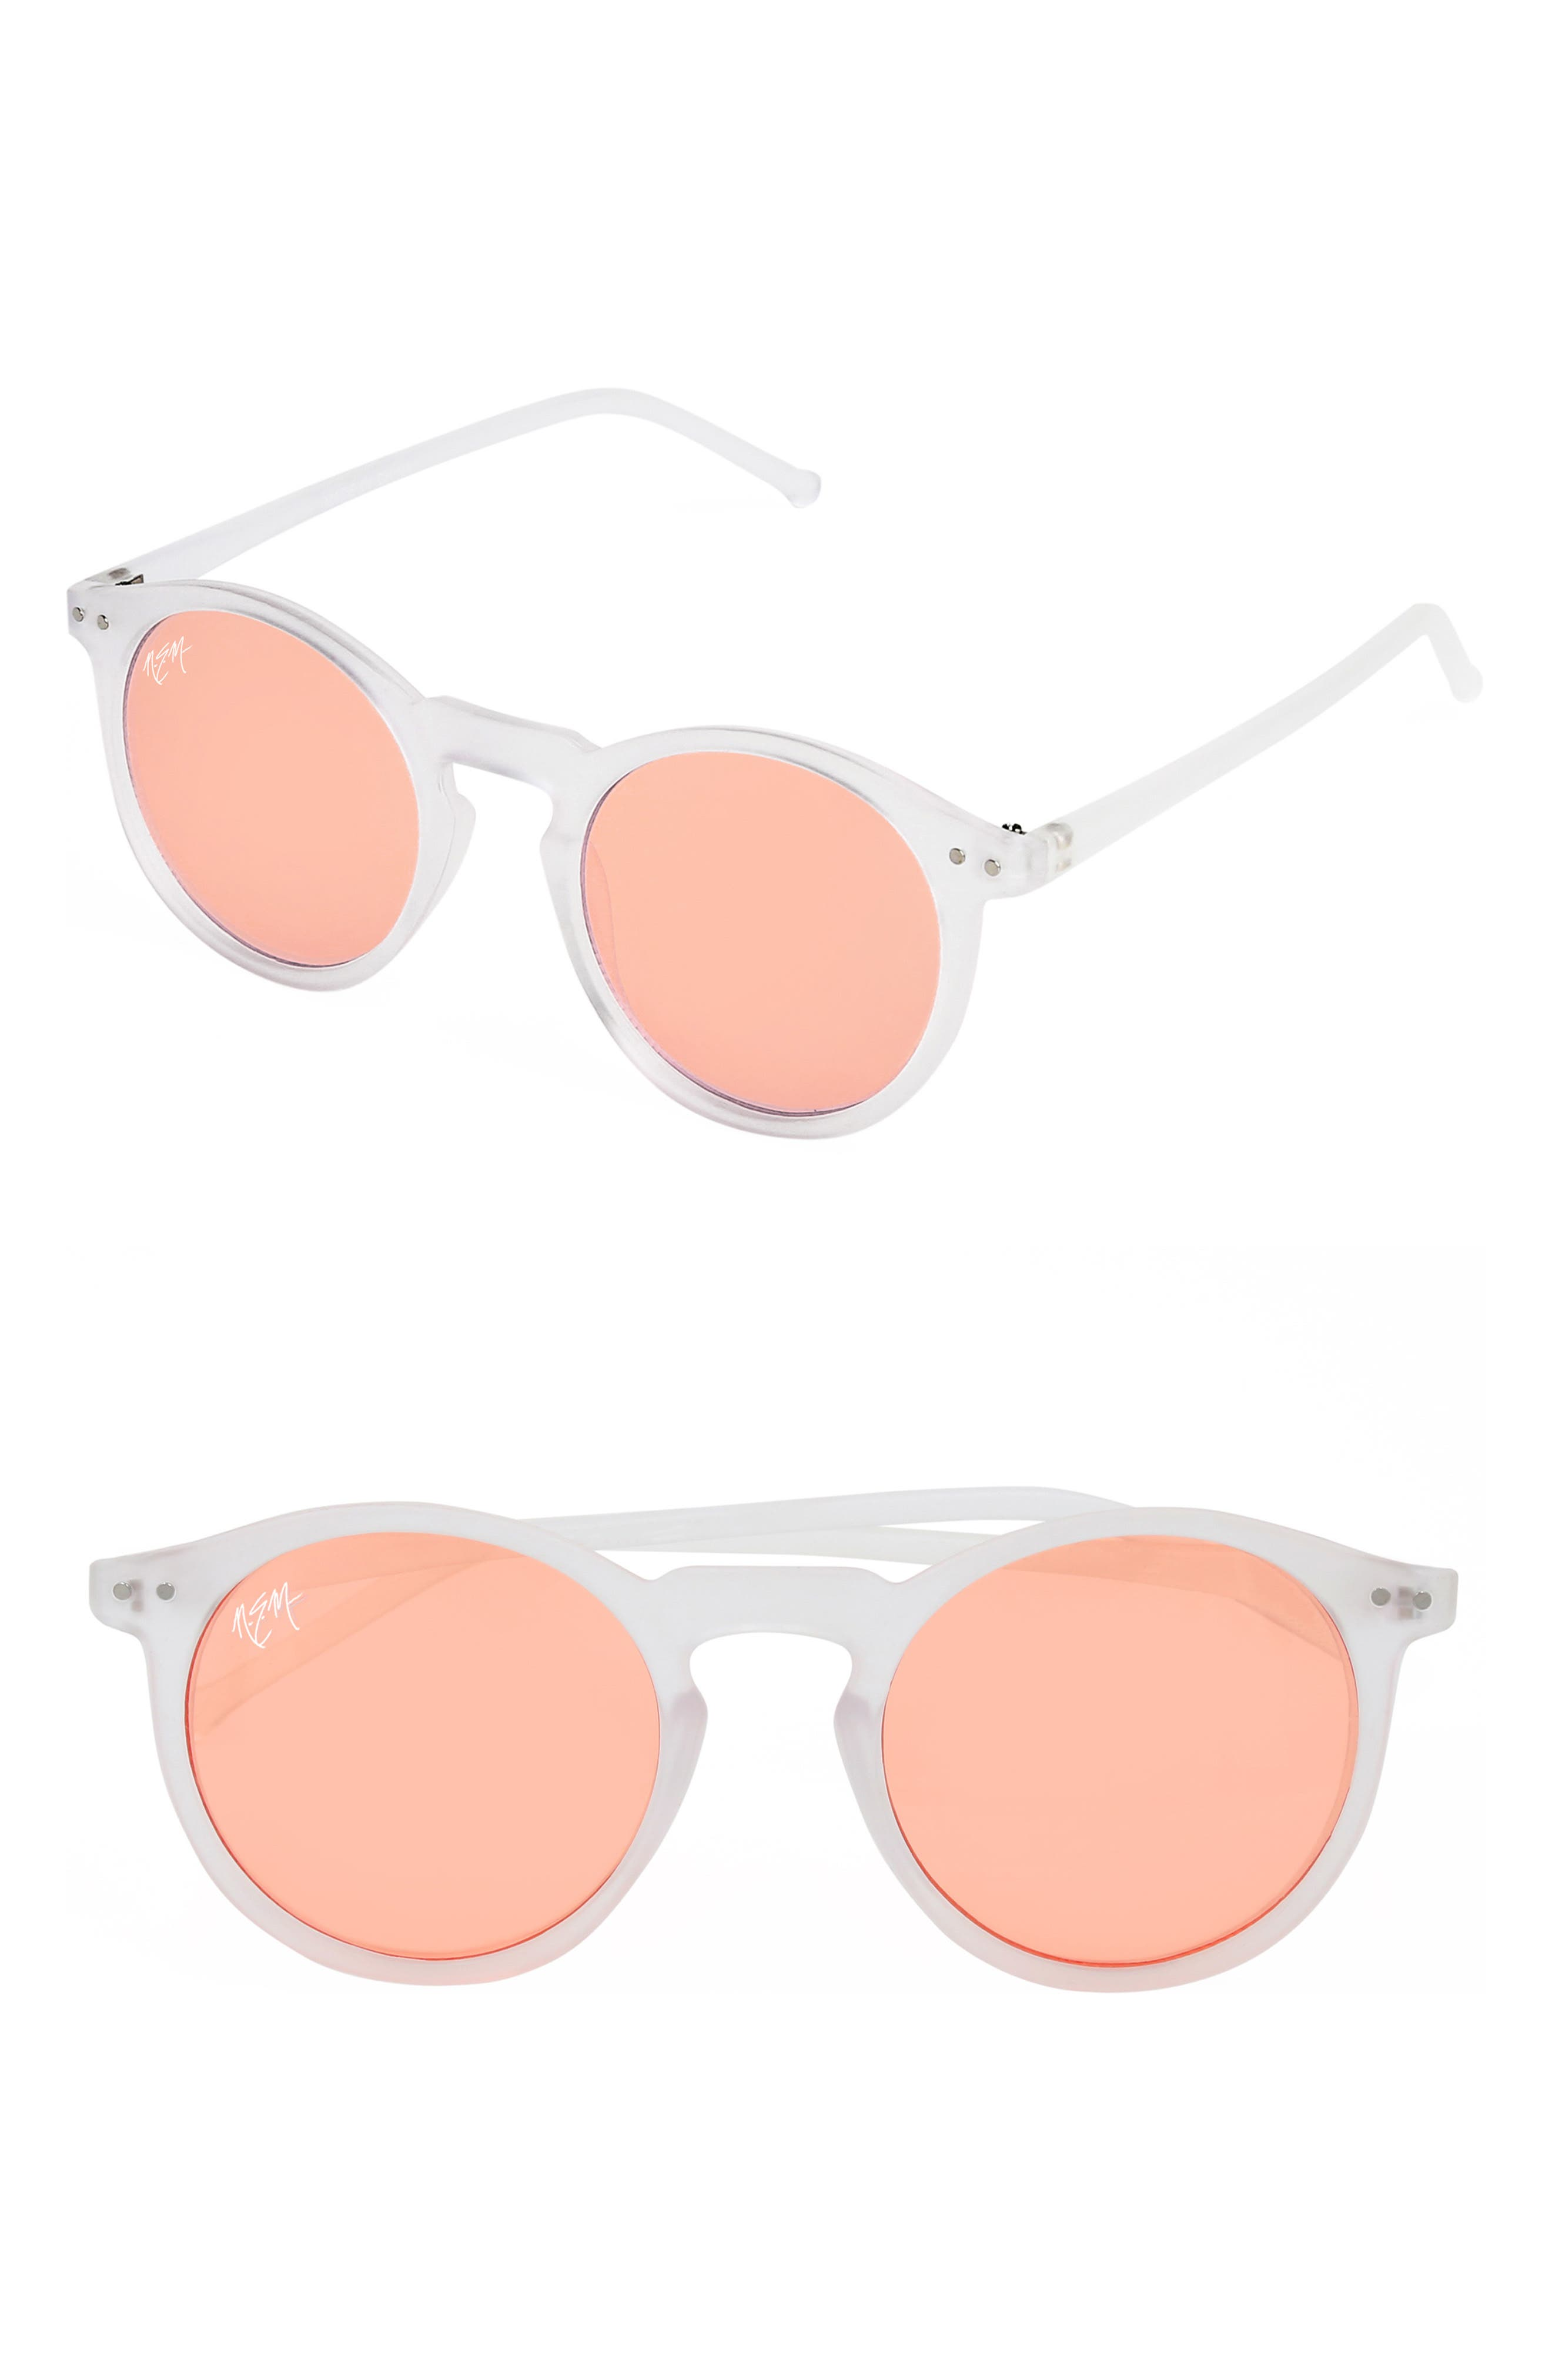 Nem 50Mm Mirrored Round Sunglasses - Clear Sky Blue/ Red Tint